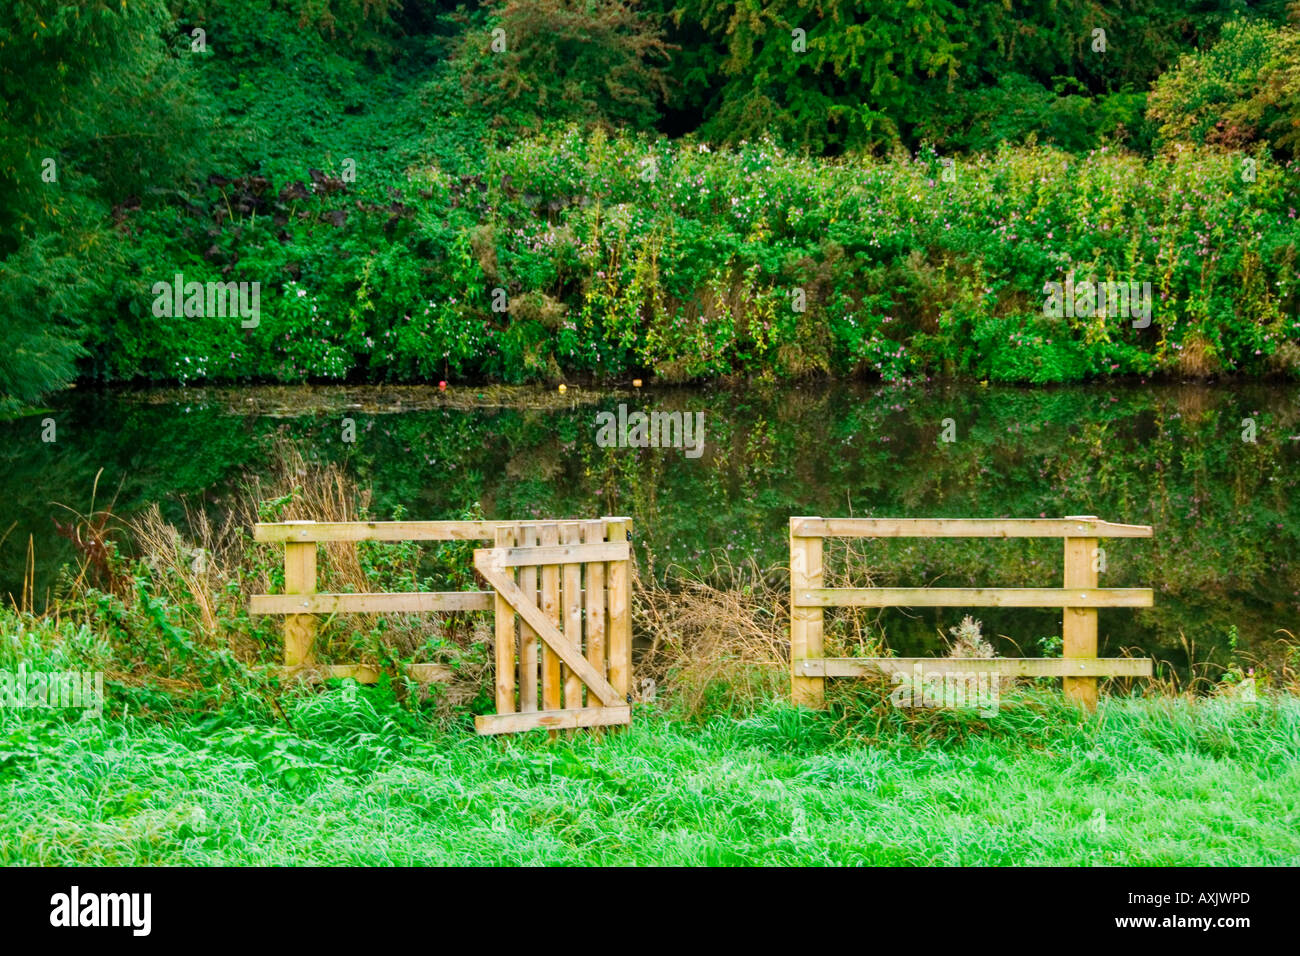 Gate to nowhere - Stock Image